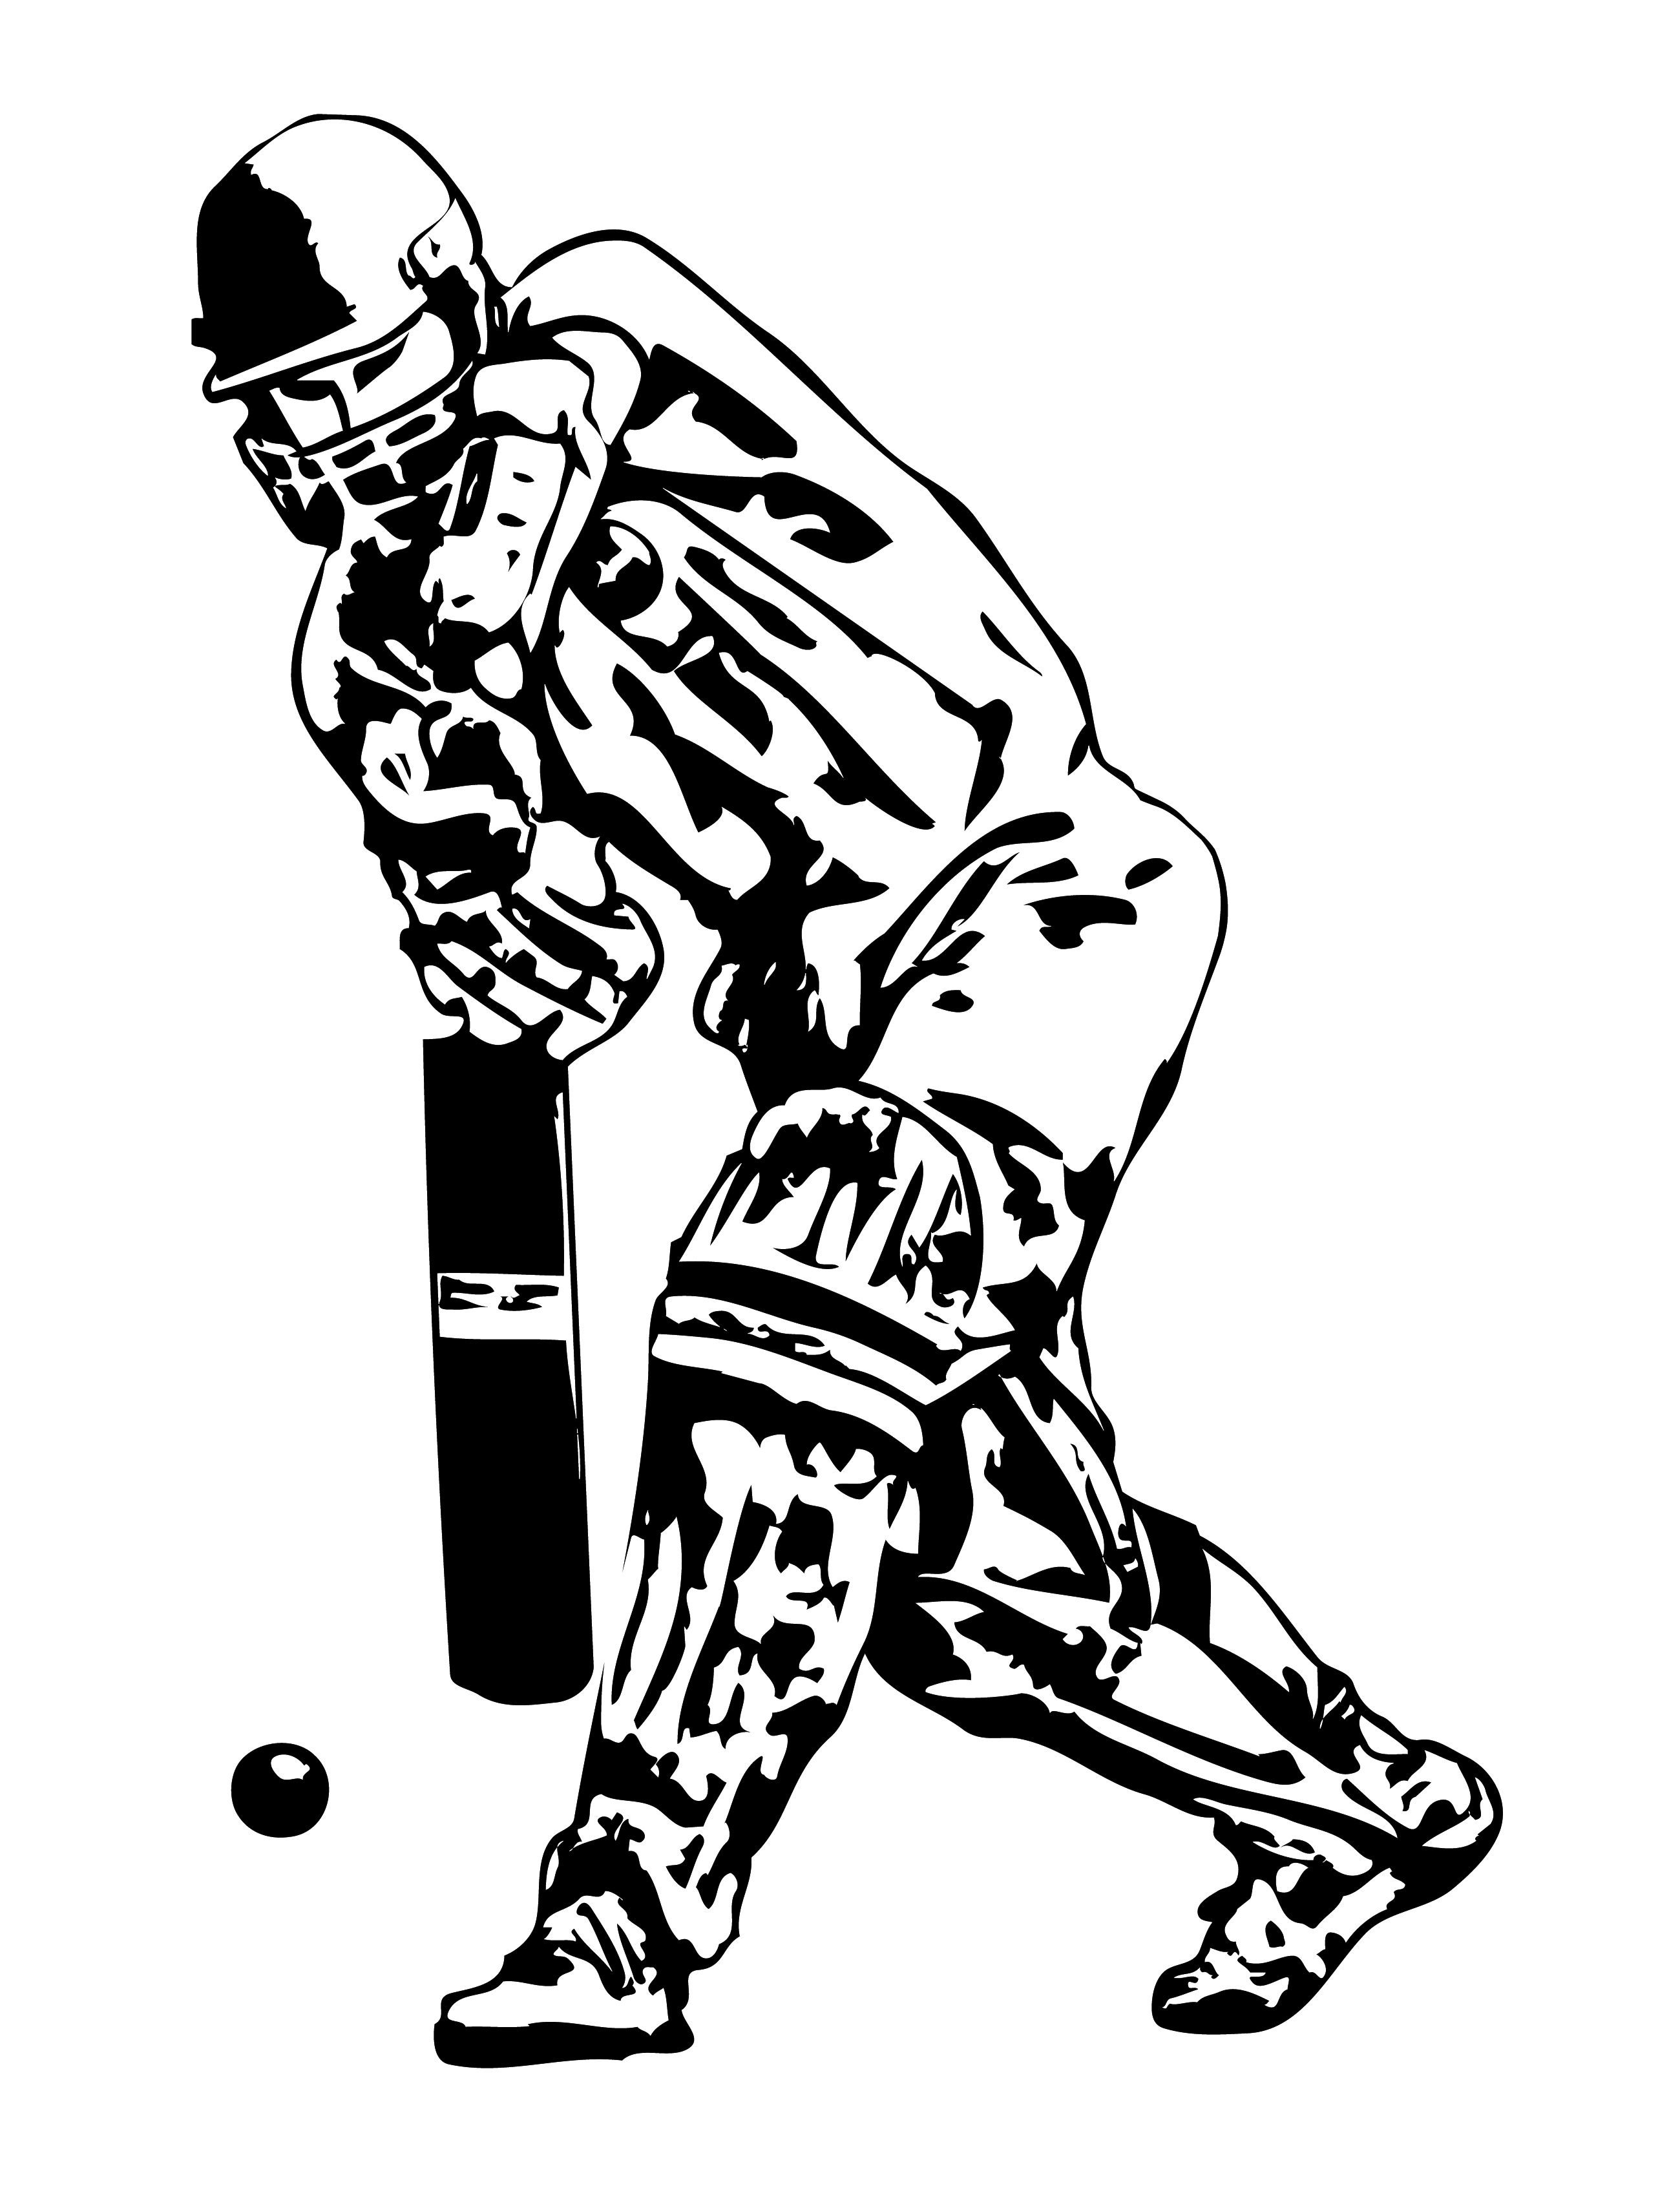 Bowling Cricket Drawing Cricket